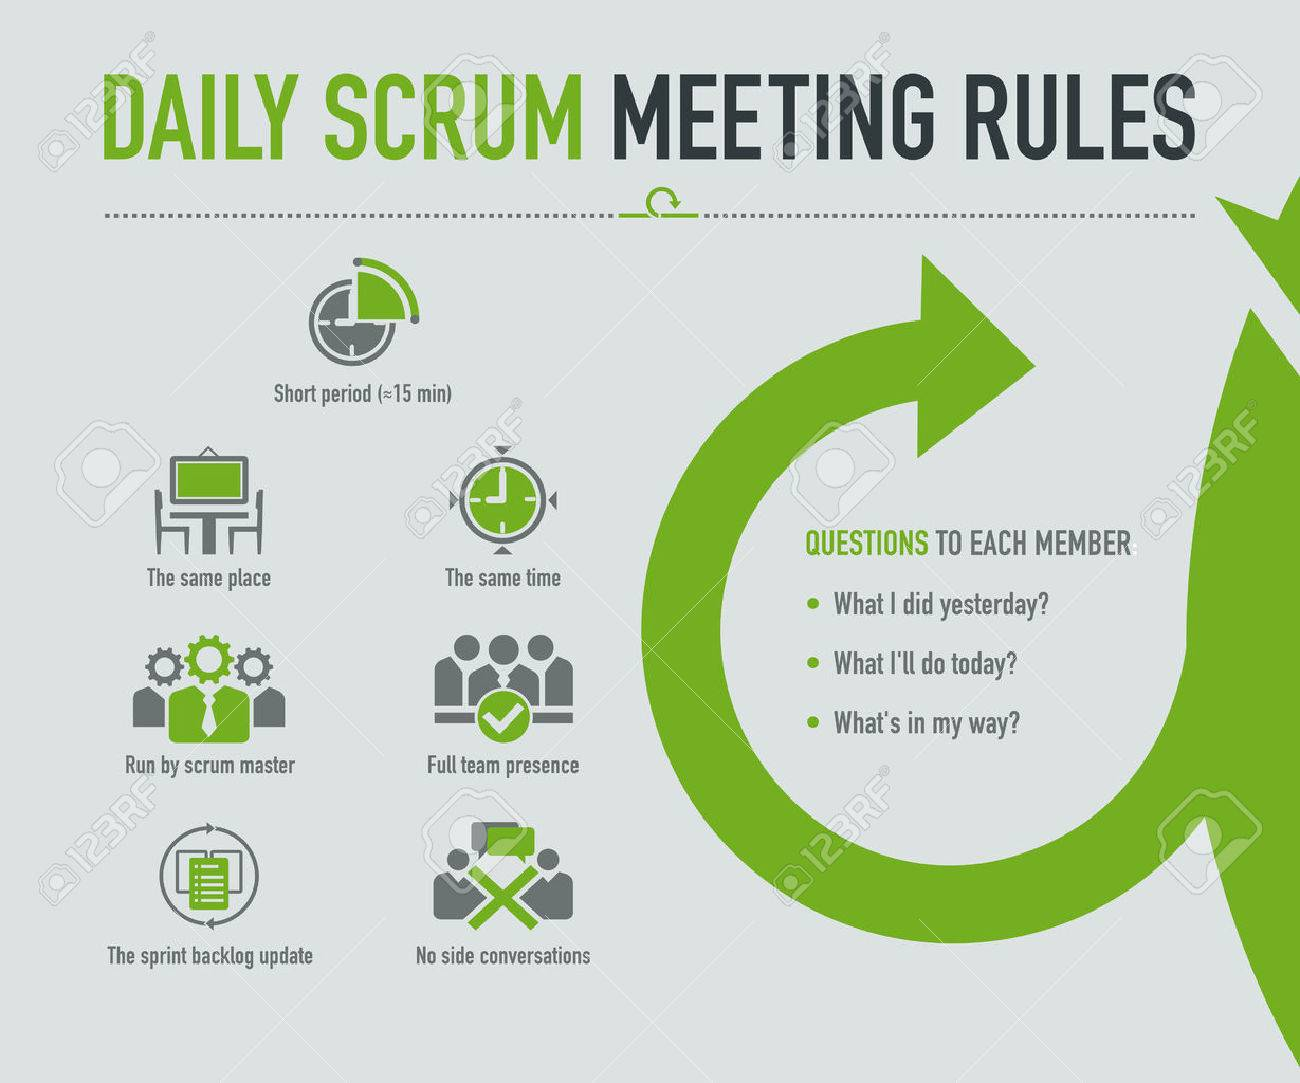 Daily scrum meeting rules - 67106547